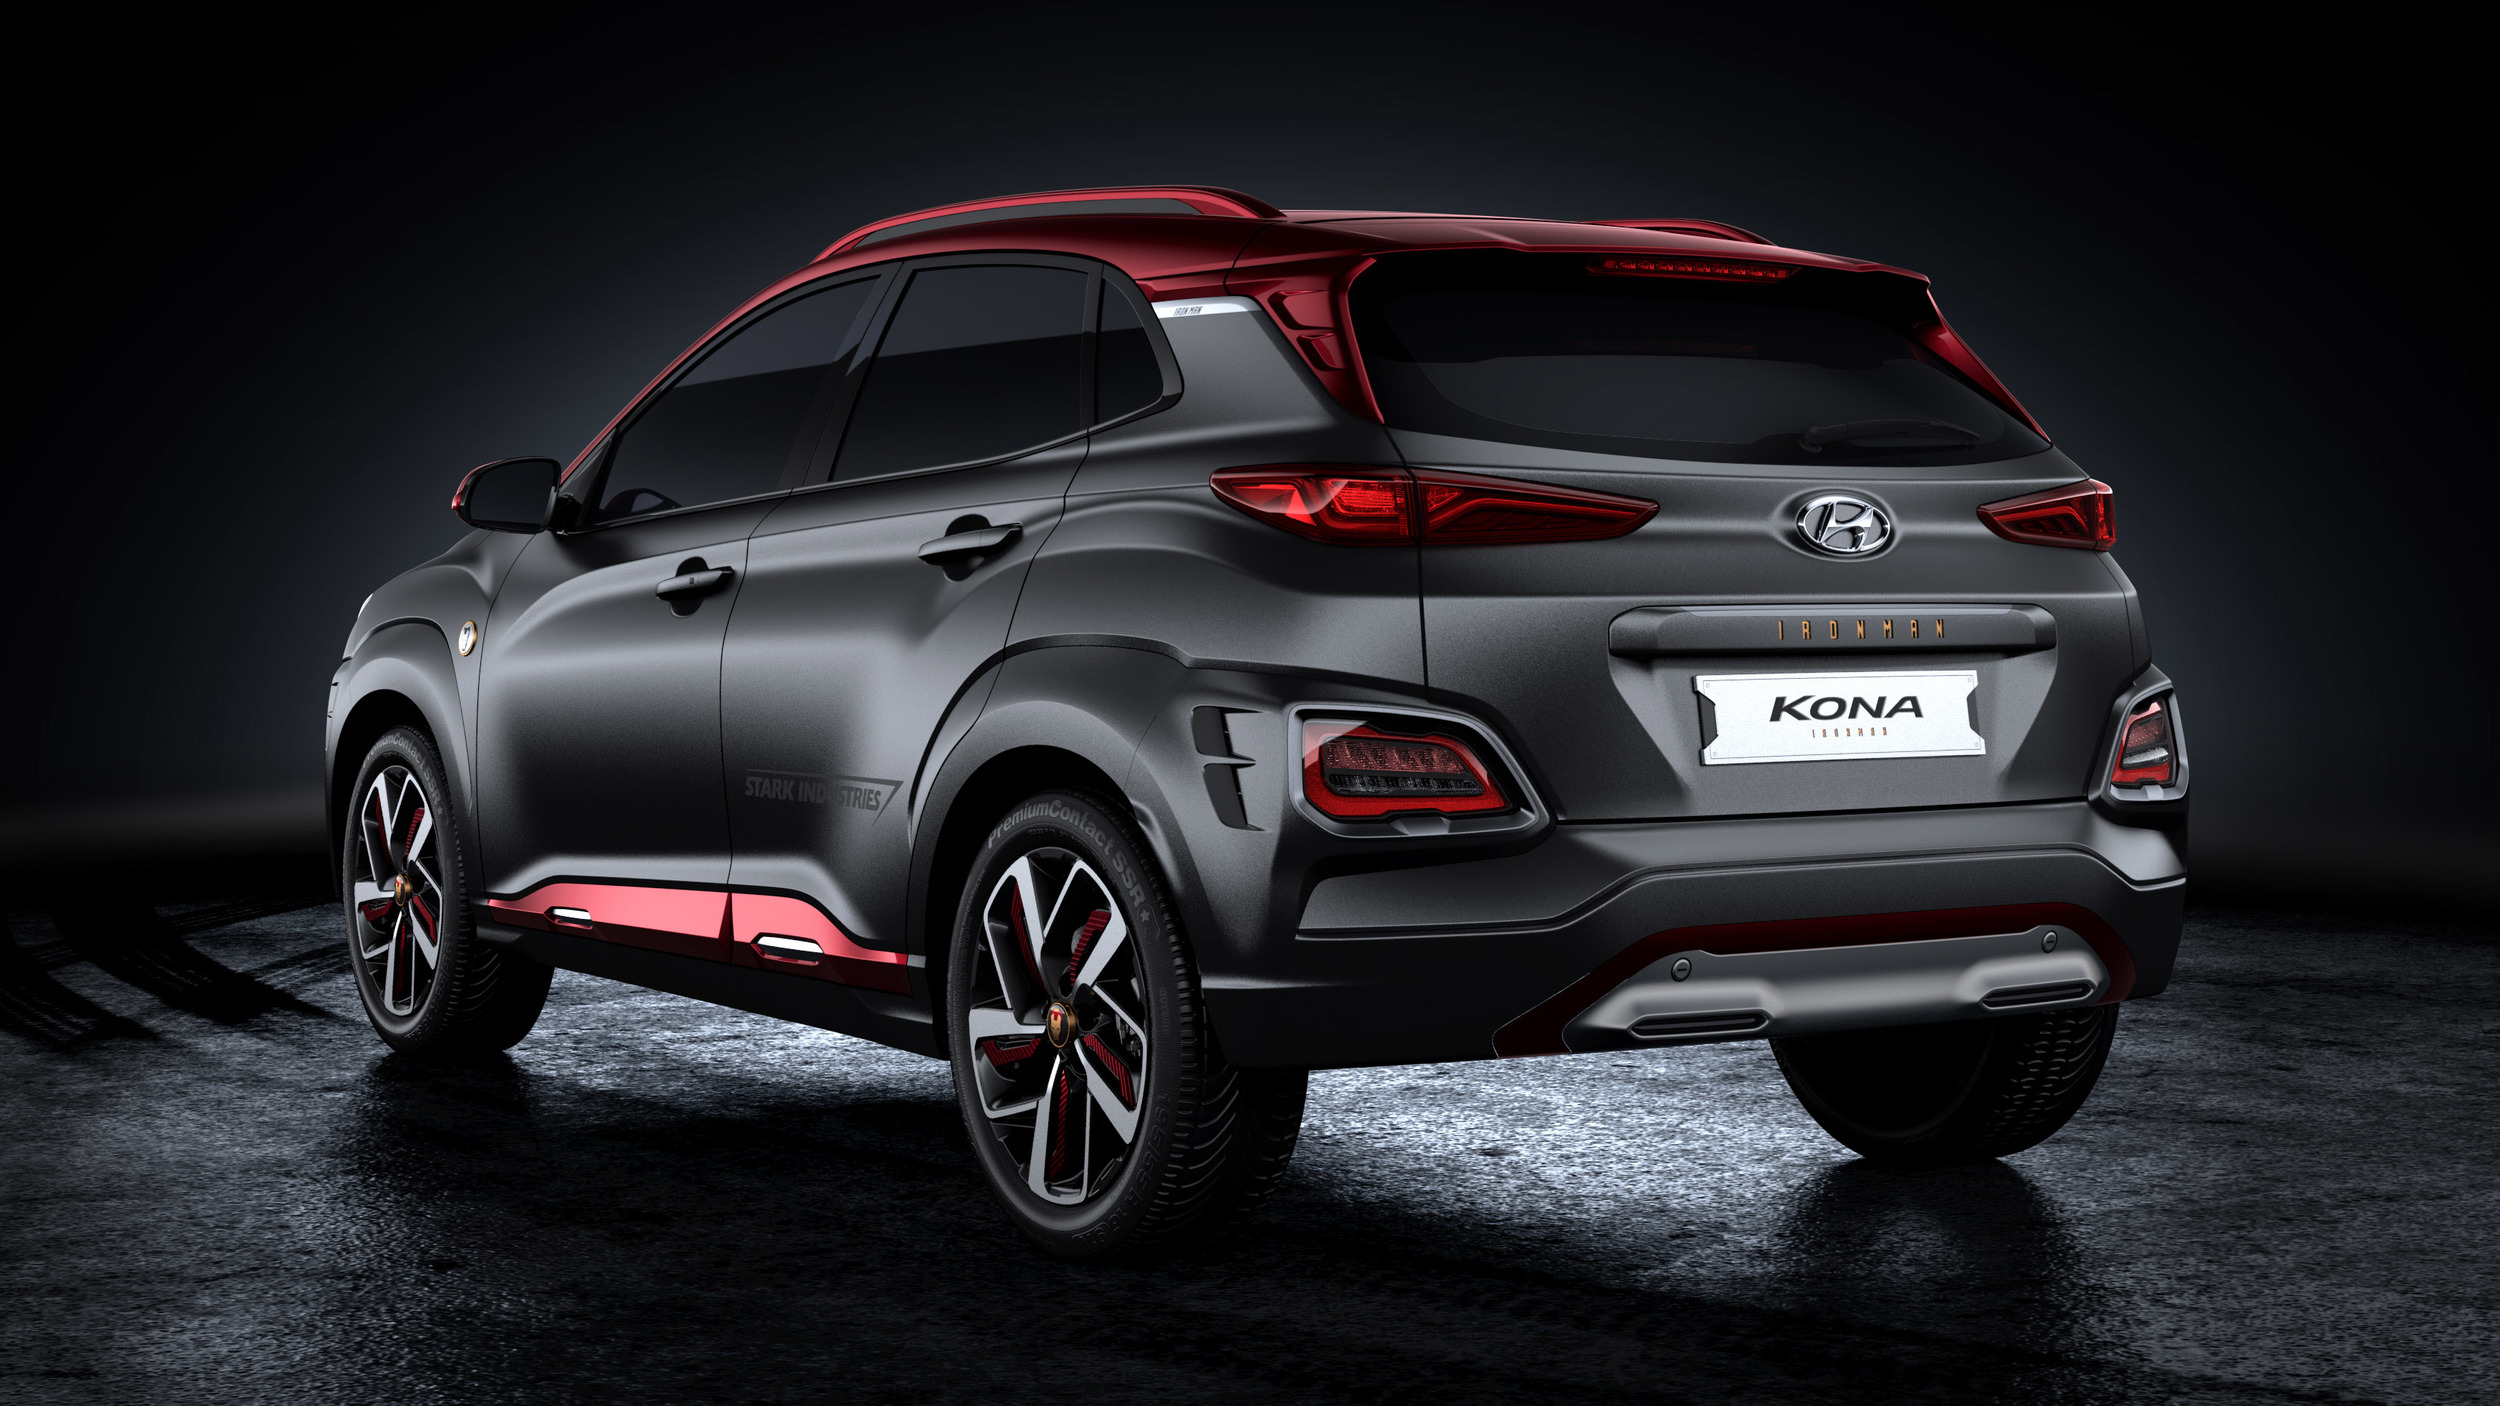 Hyundai Kona Iron Man Edition (5)